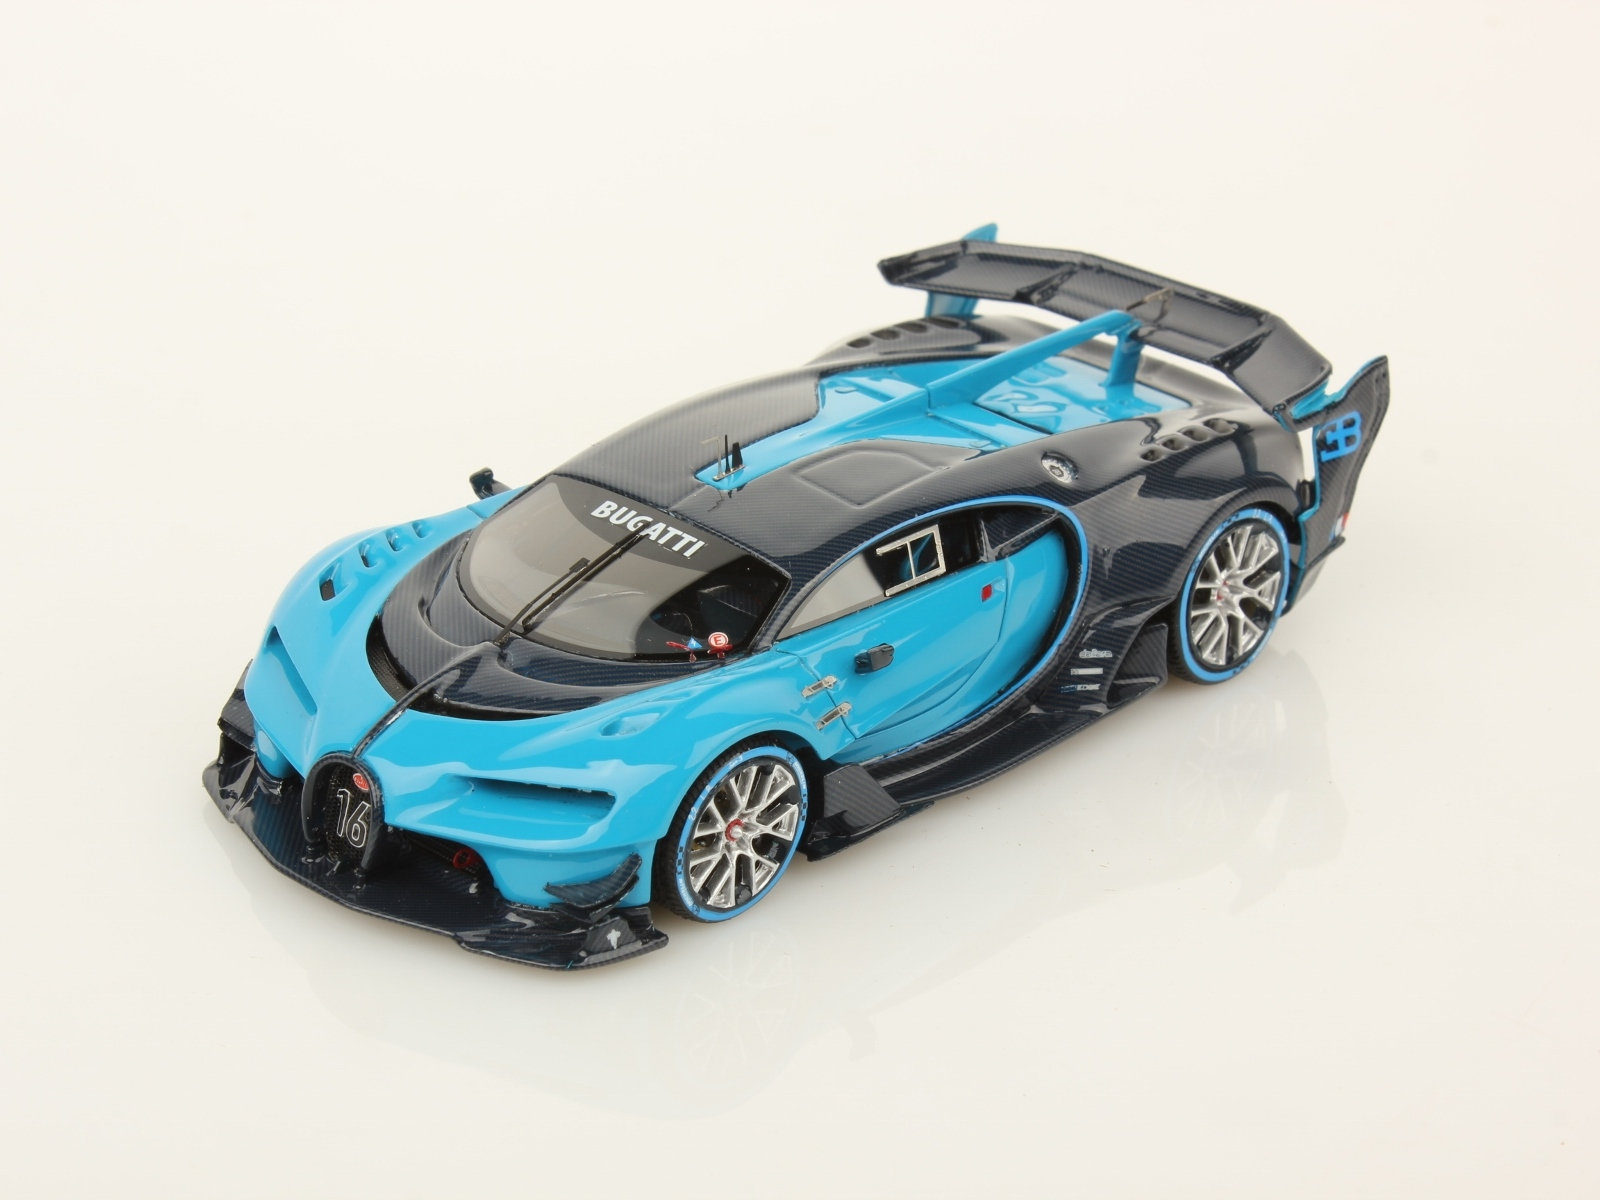 bugatti chiron, fast and luxurious, even in scale | mr collection